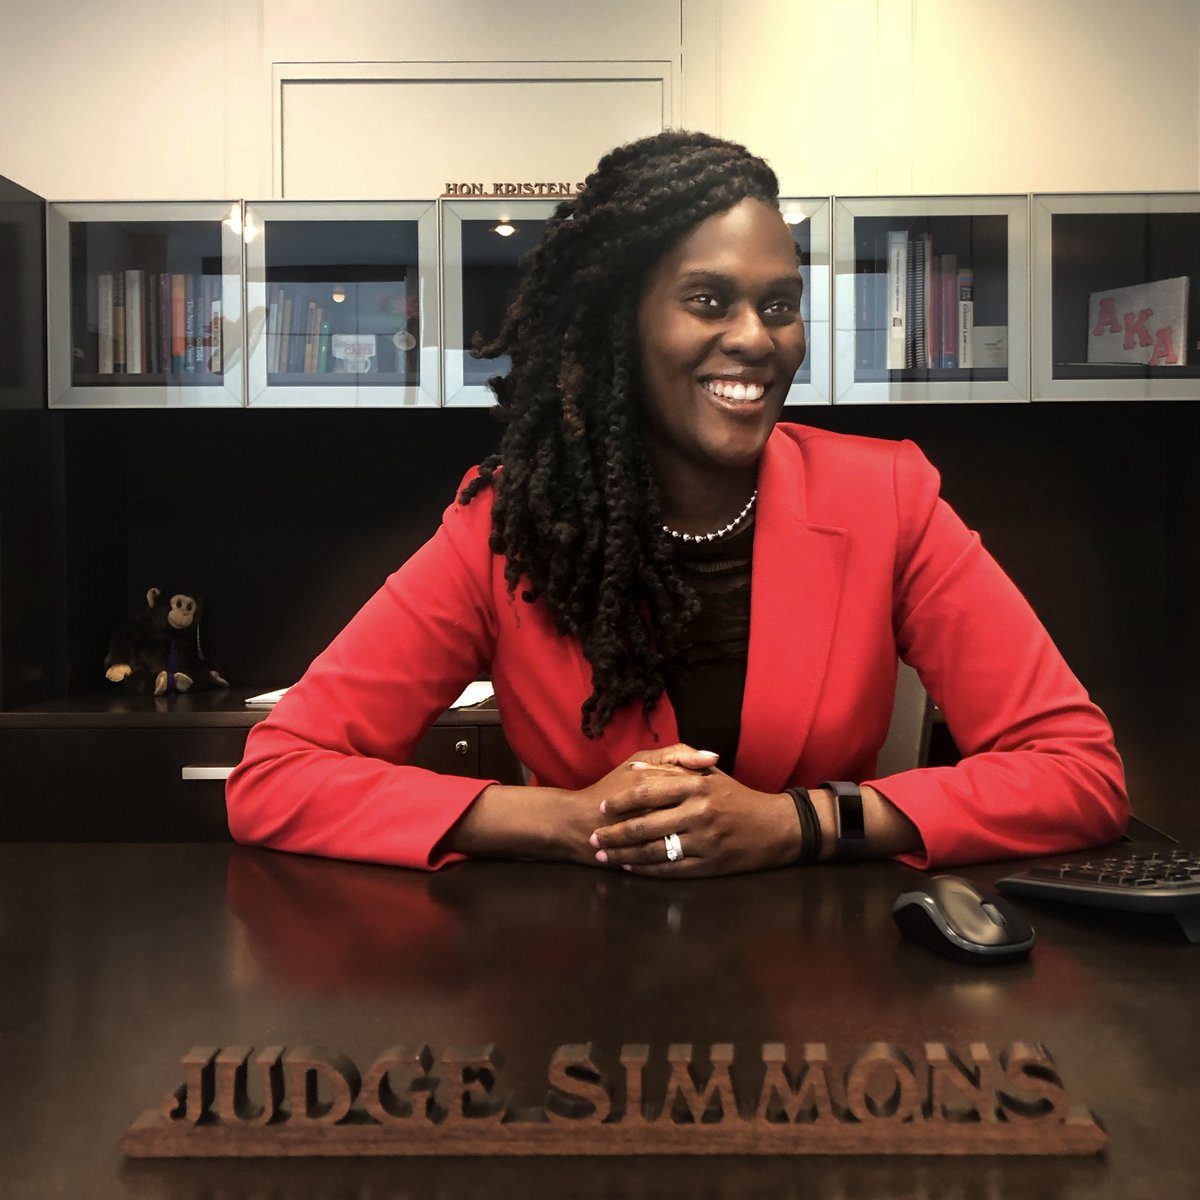 Our kind of people work toward their dreams. Lansing resident Judge Kristen Simmons dreamed of being a Supreme Court justice since childhood – and today, she serves as a judge for the 5A District Court. #MKOP #MyKindOfPeople